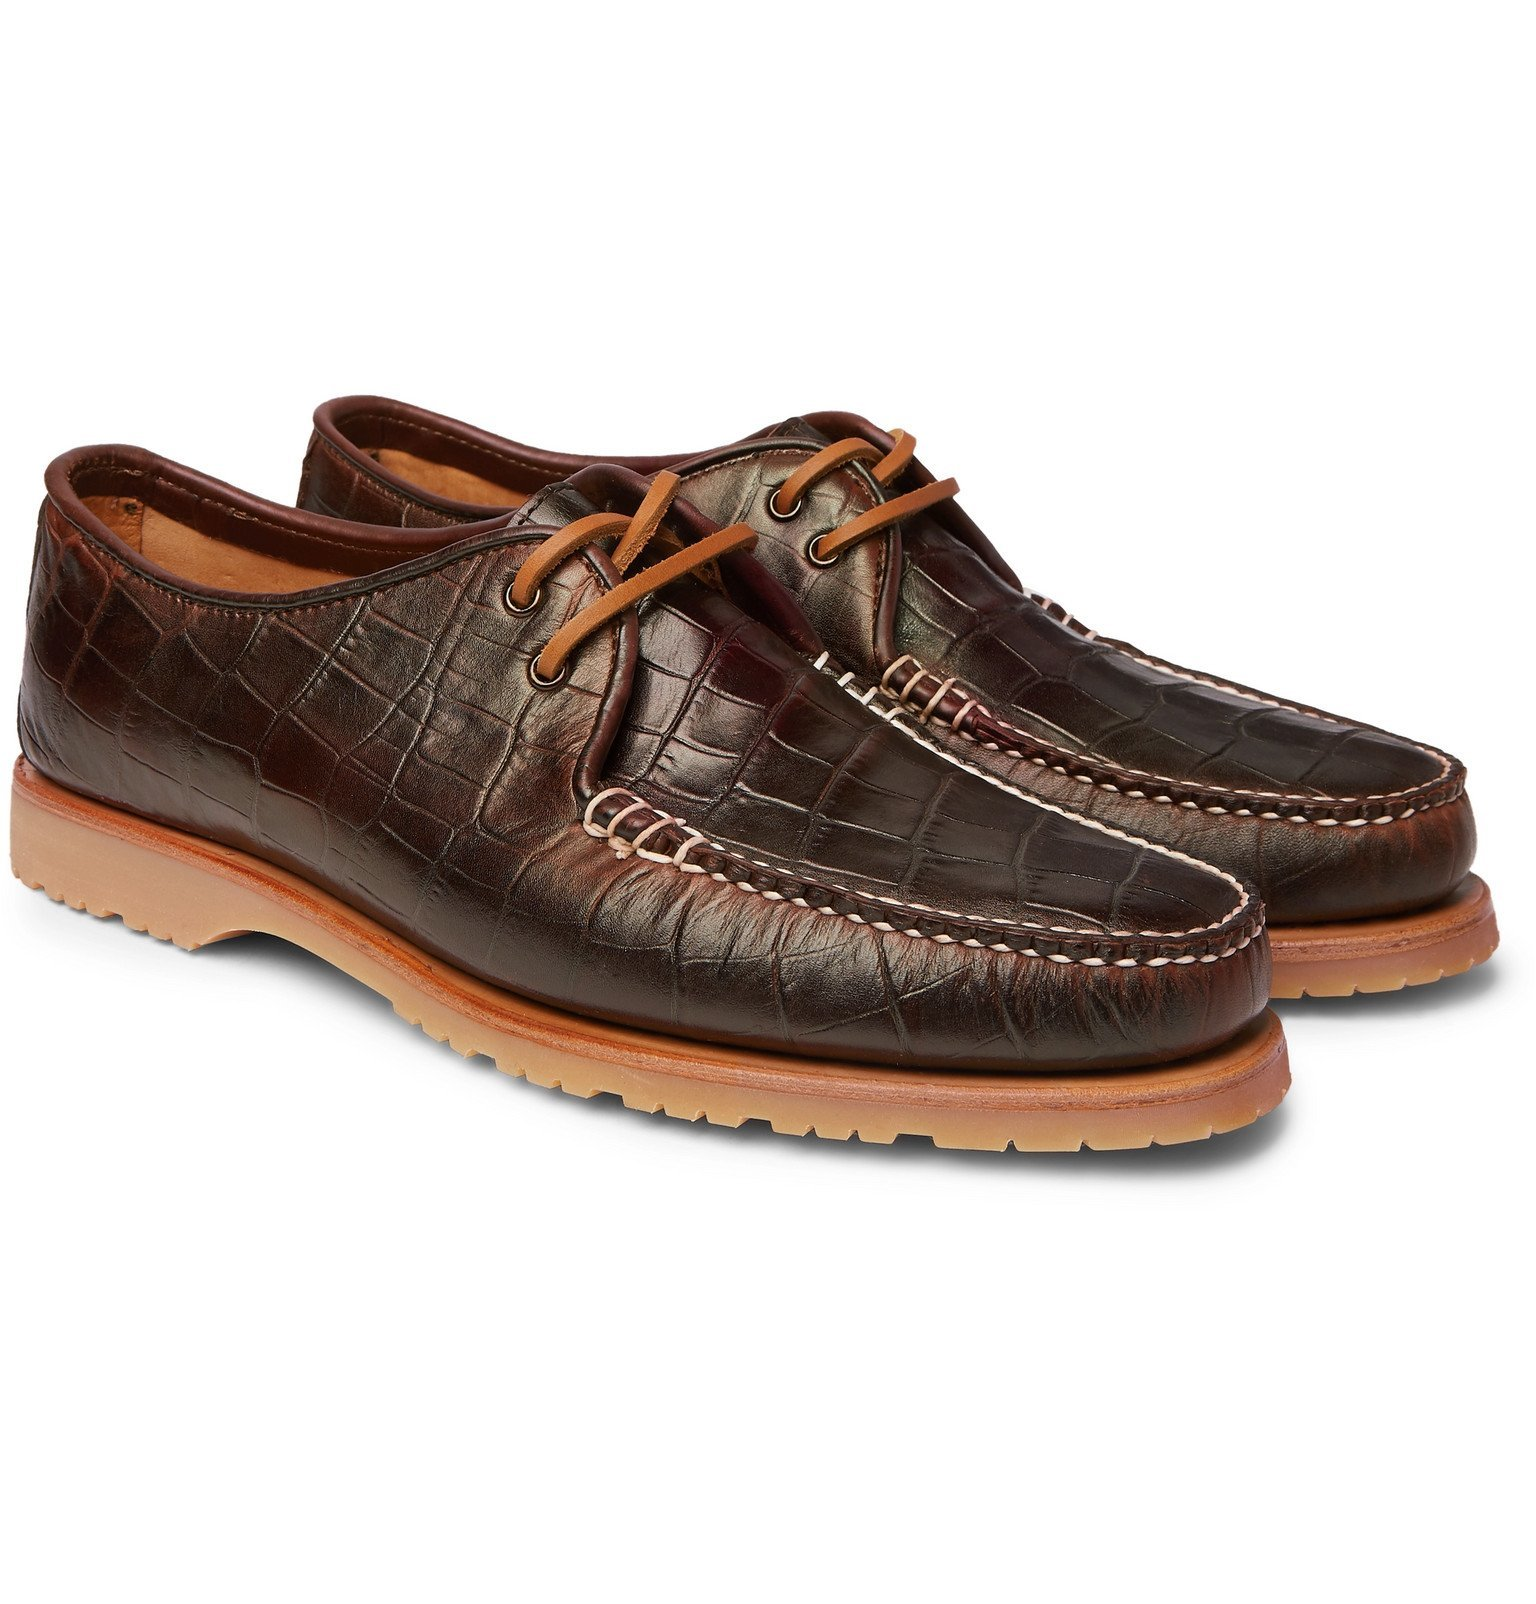 Photo: Noah - Sperry The Captain's Oxford Croc-Effect Leather Loafers - Brown